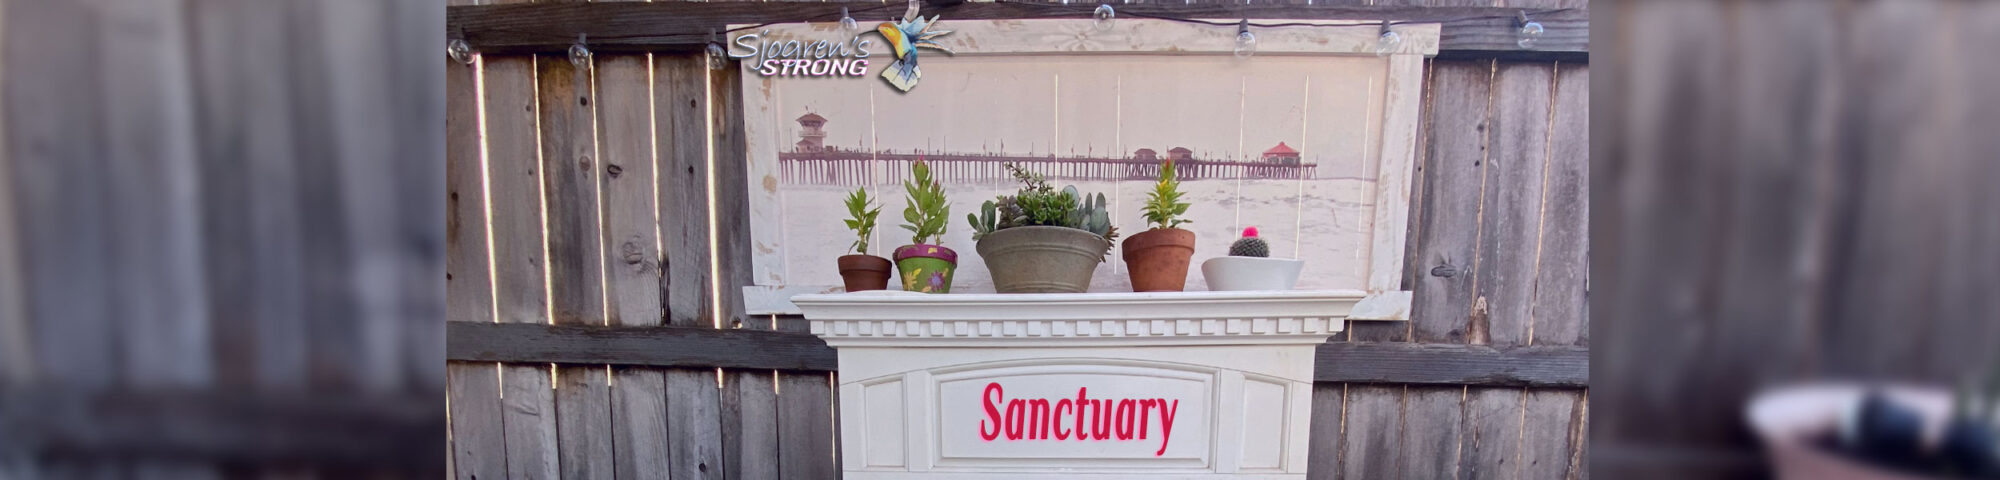 Sanctuary: : A Place of Refuge and Protection